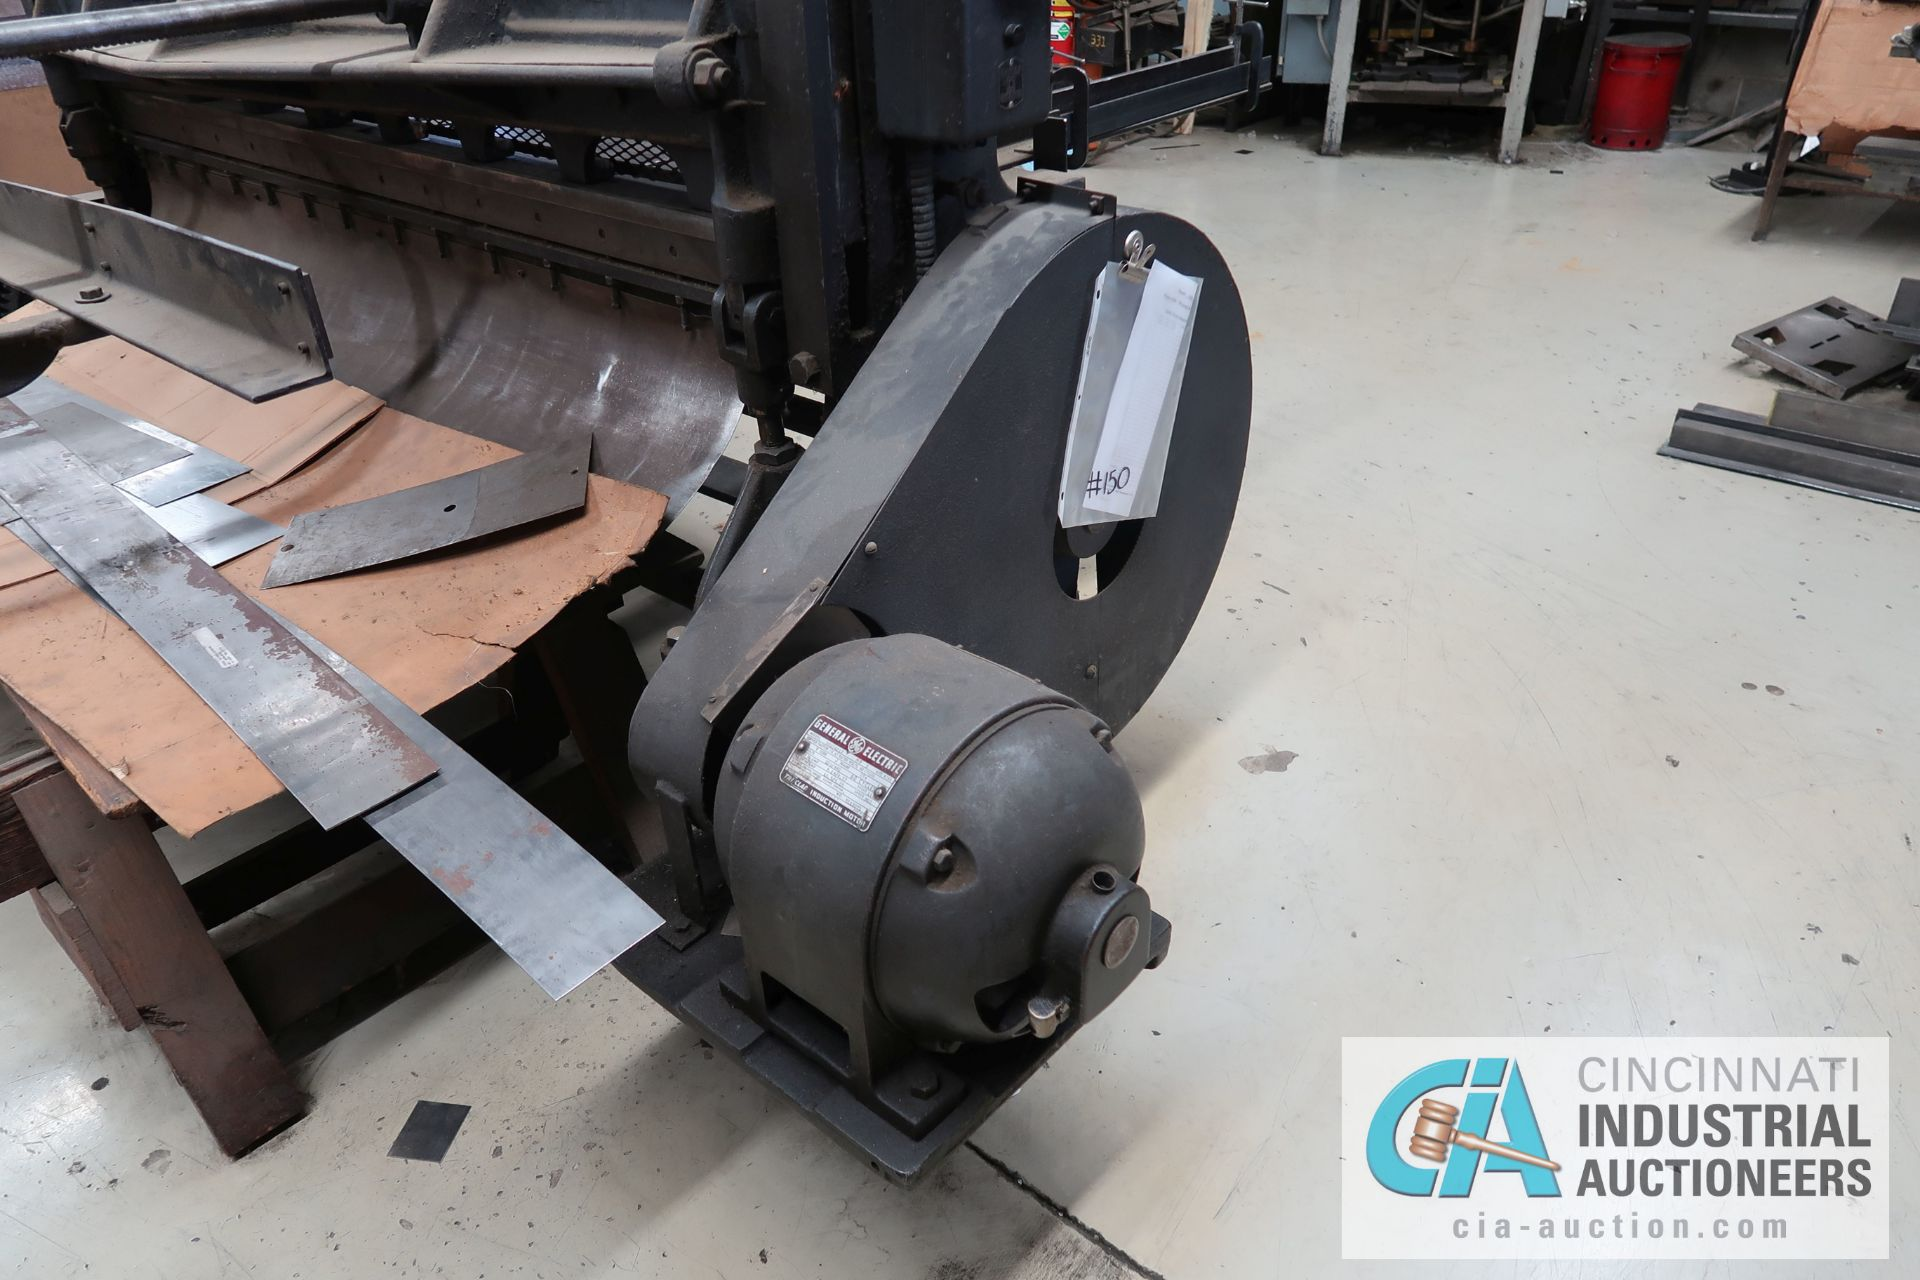 6' X 16 GAUGE MAX WYSONG SHEAR; S/N N/A, 3 HP ELECTRIC MOTOR, MANUAL CRANK BACKGAUGE - Image 4 of 8